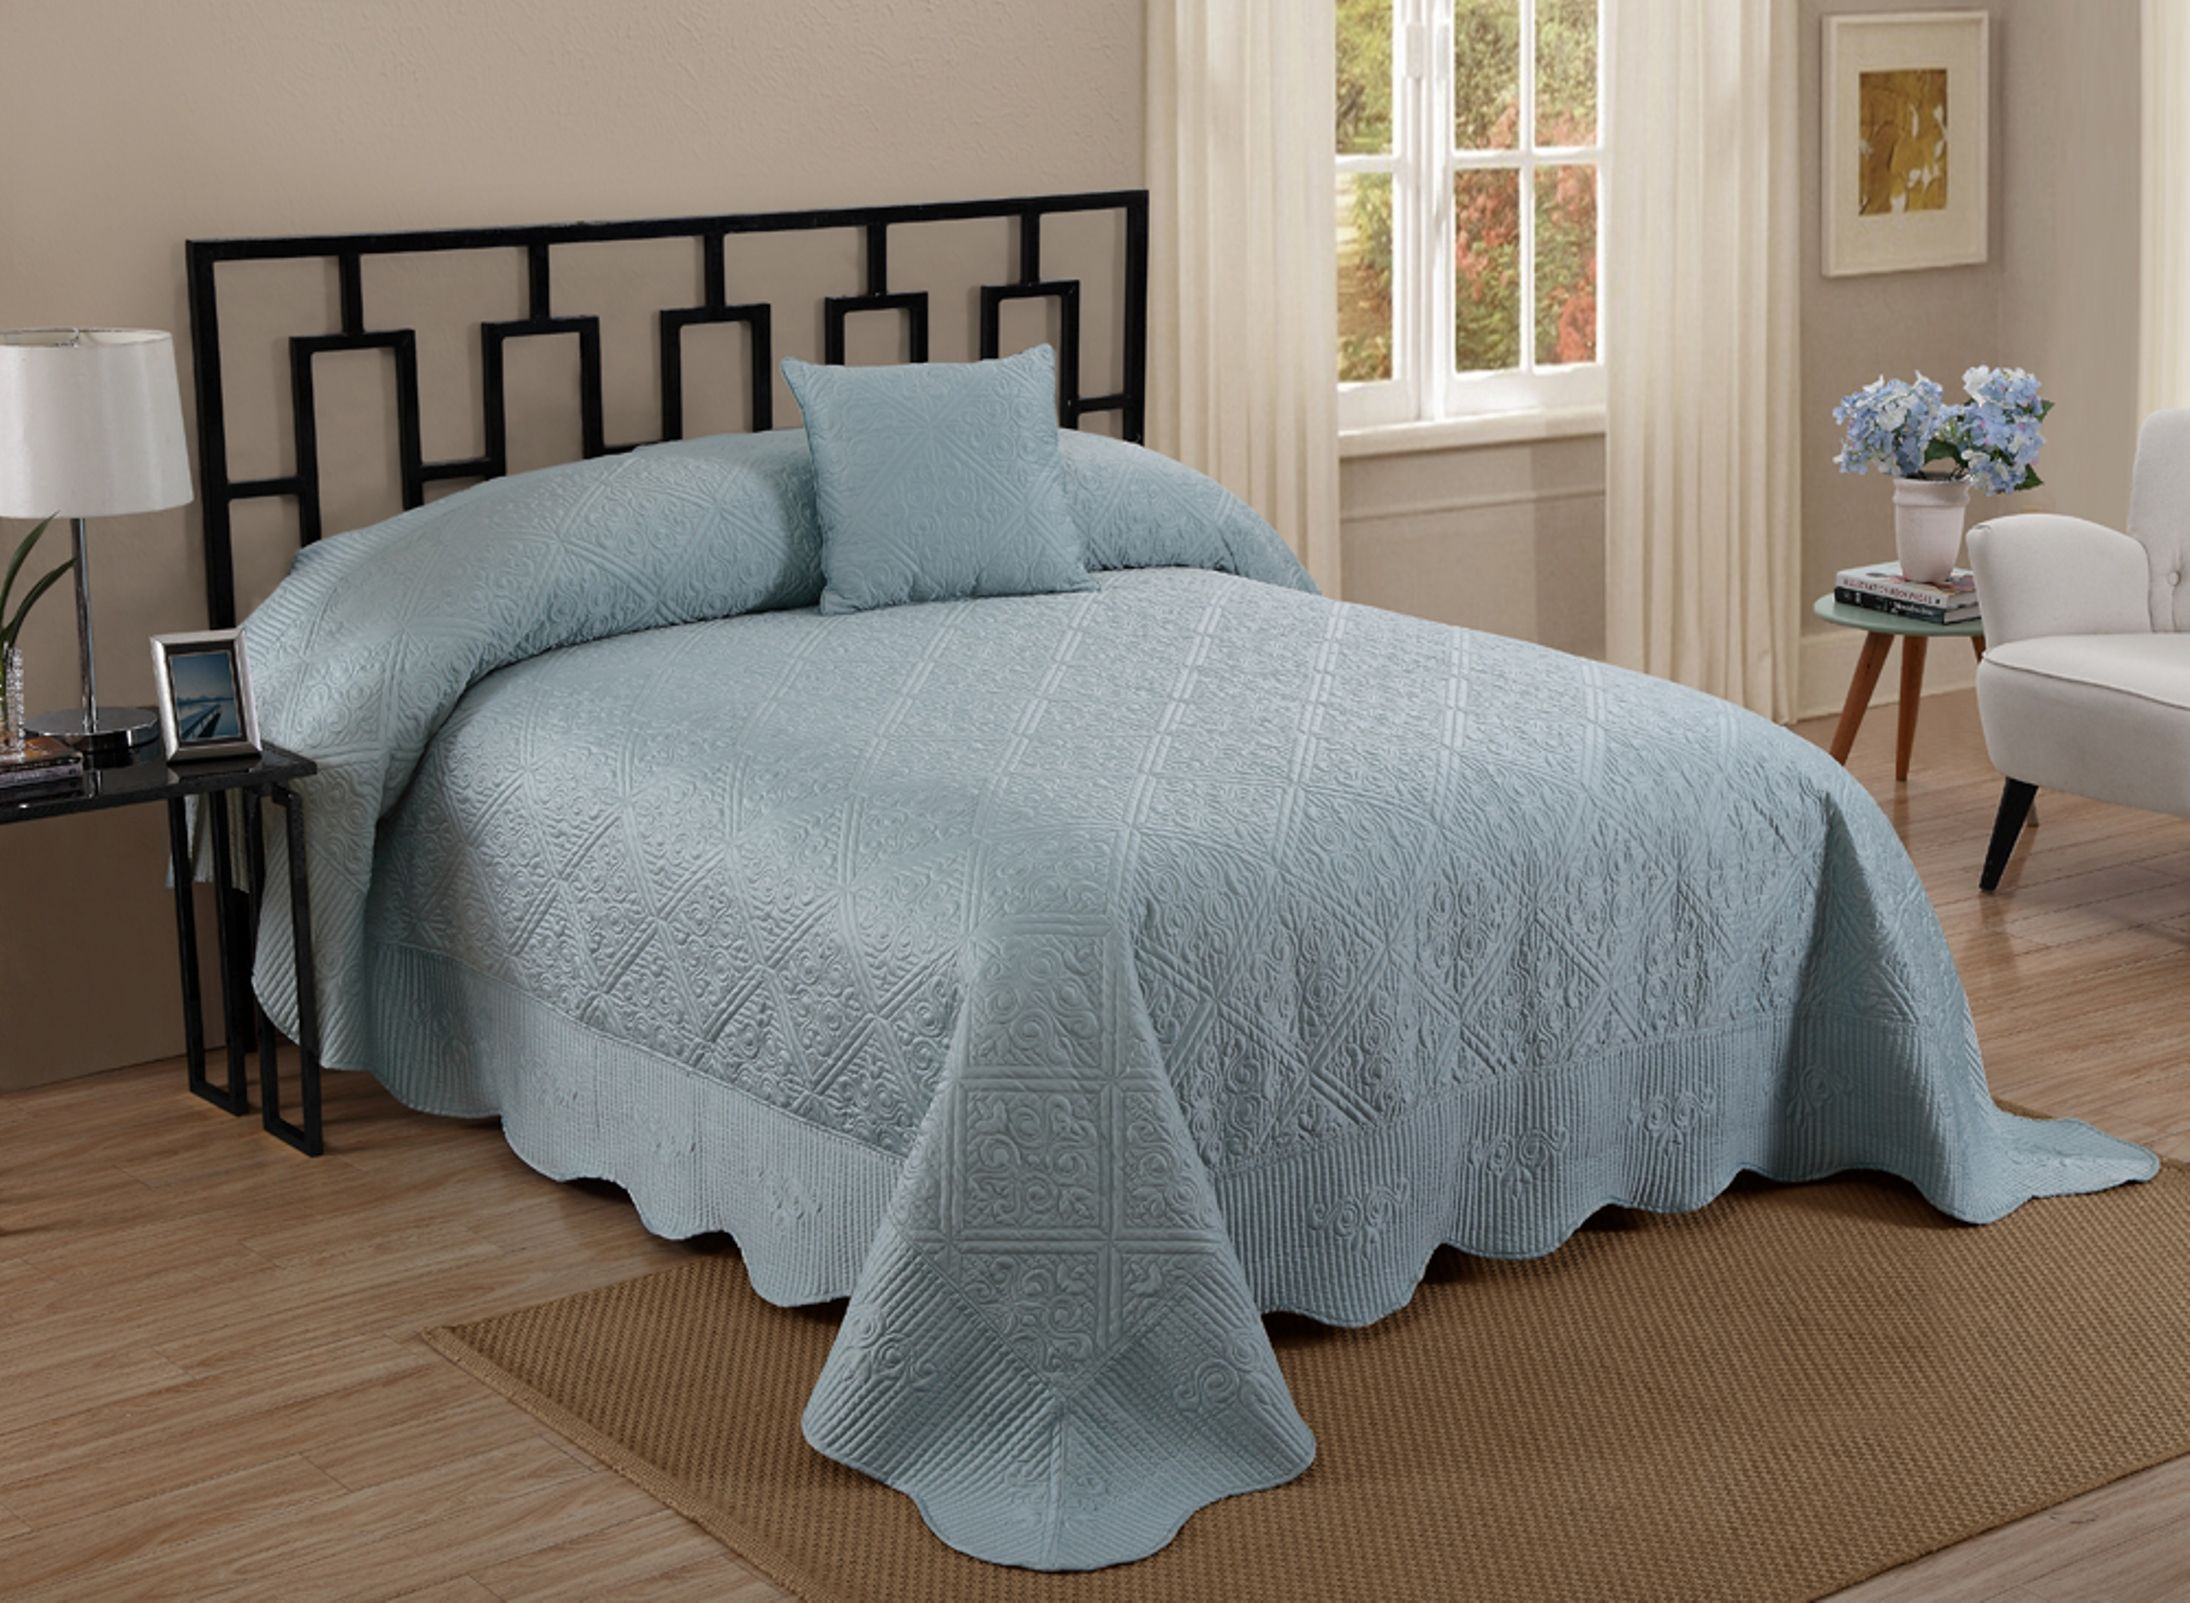 Sears Com French Inspired Bedding Sears Bedding Bedroom